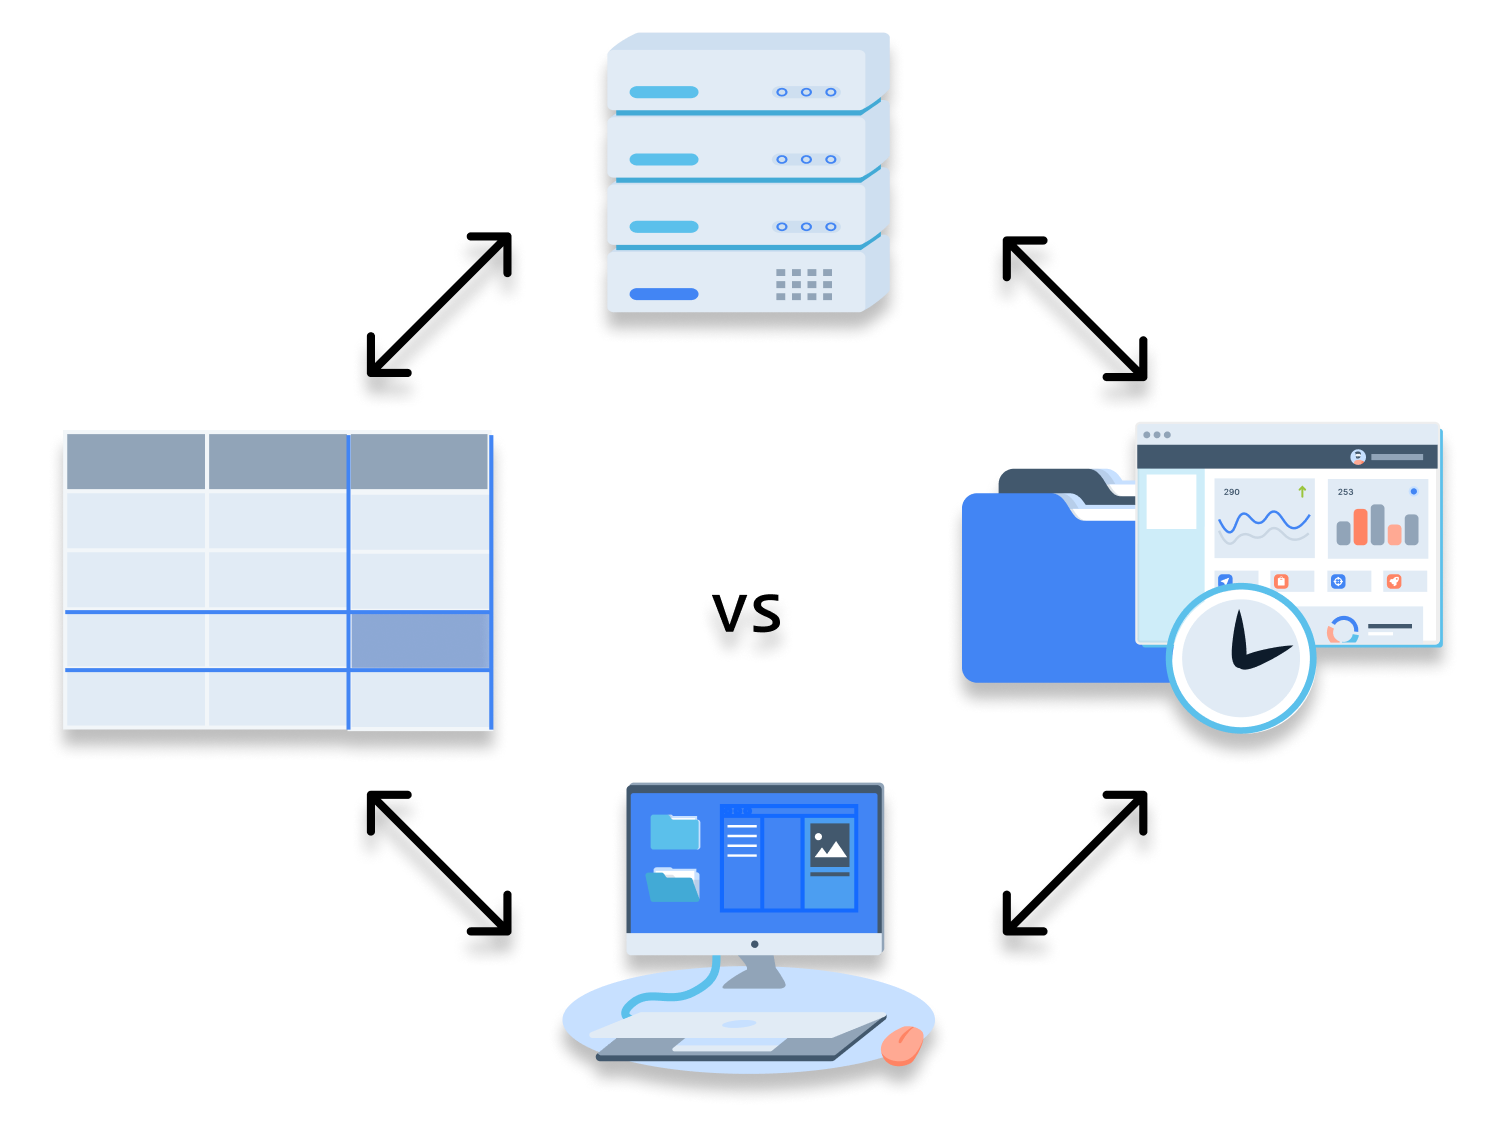 The process a computer uses to access a database via structure, table-like methods of relational databases or the varied methods of nonrelational databases.